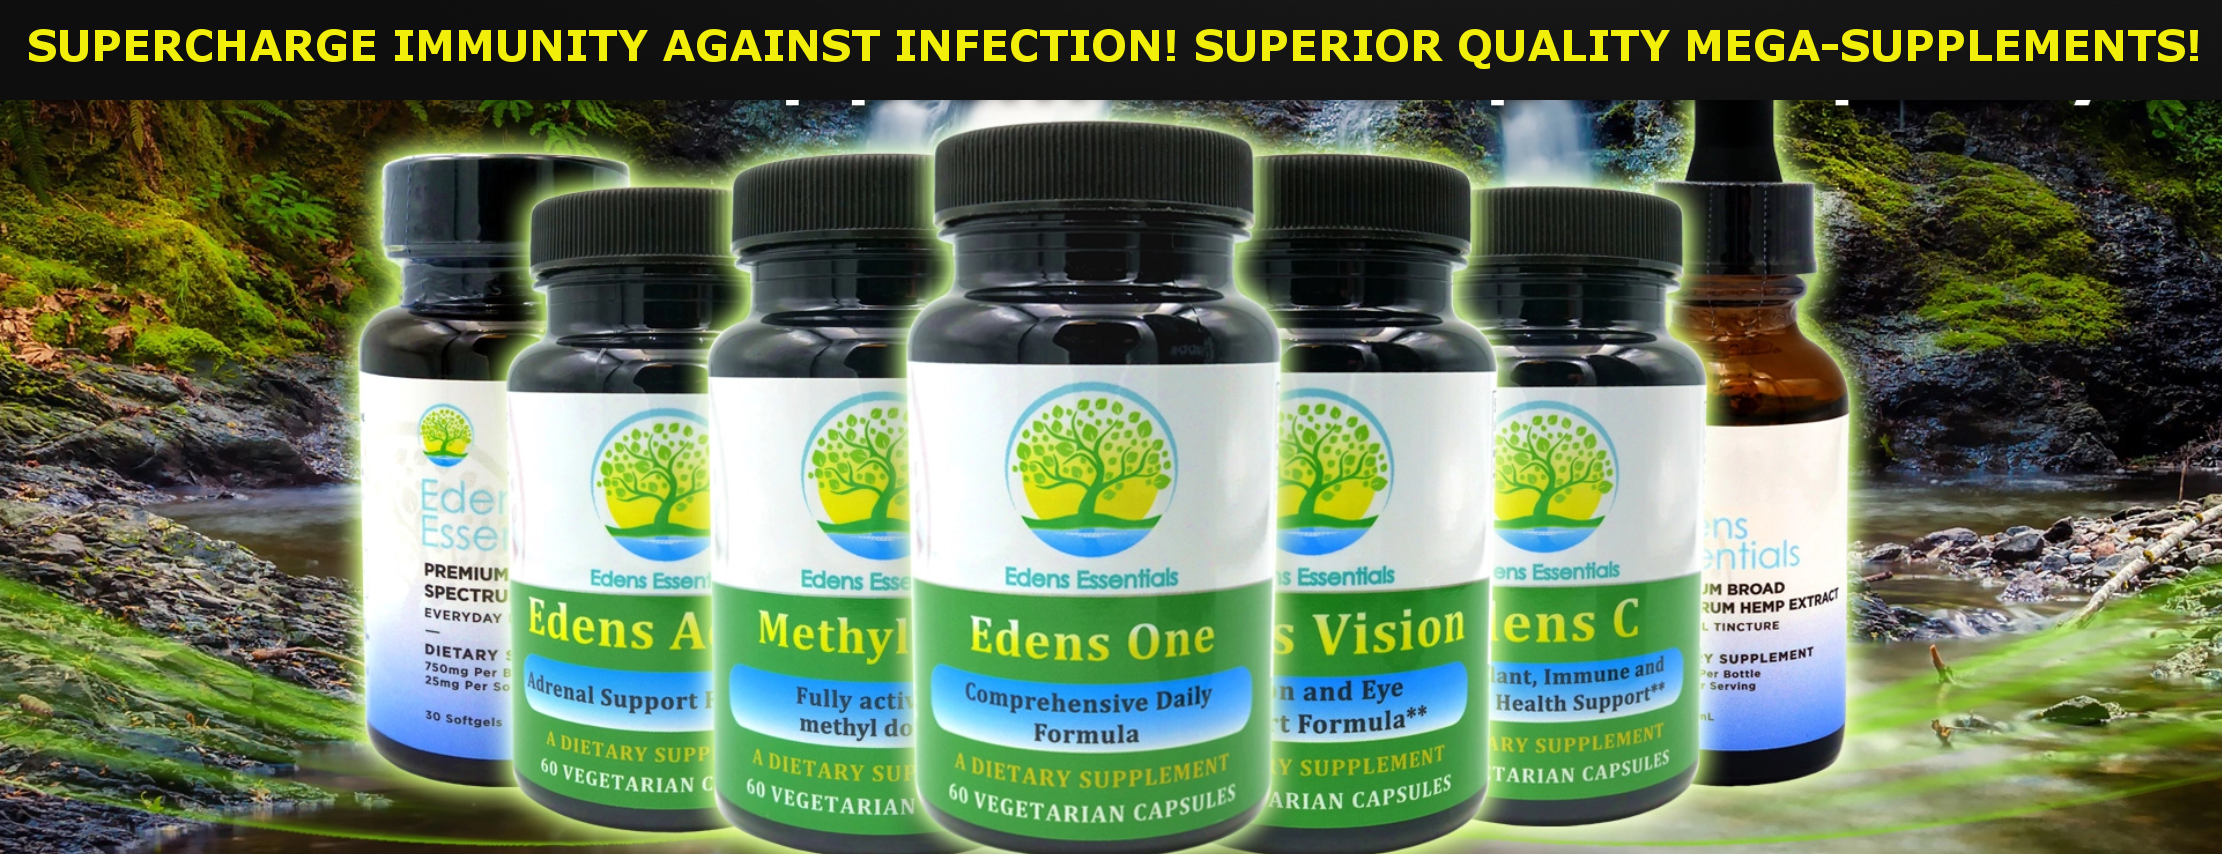 SUPERCHARGE IMMUNITY AGAINST VIRUSES WITH FERMENTED MUSHROOMS, CERTIFIED ORGANICS!